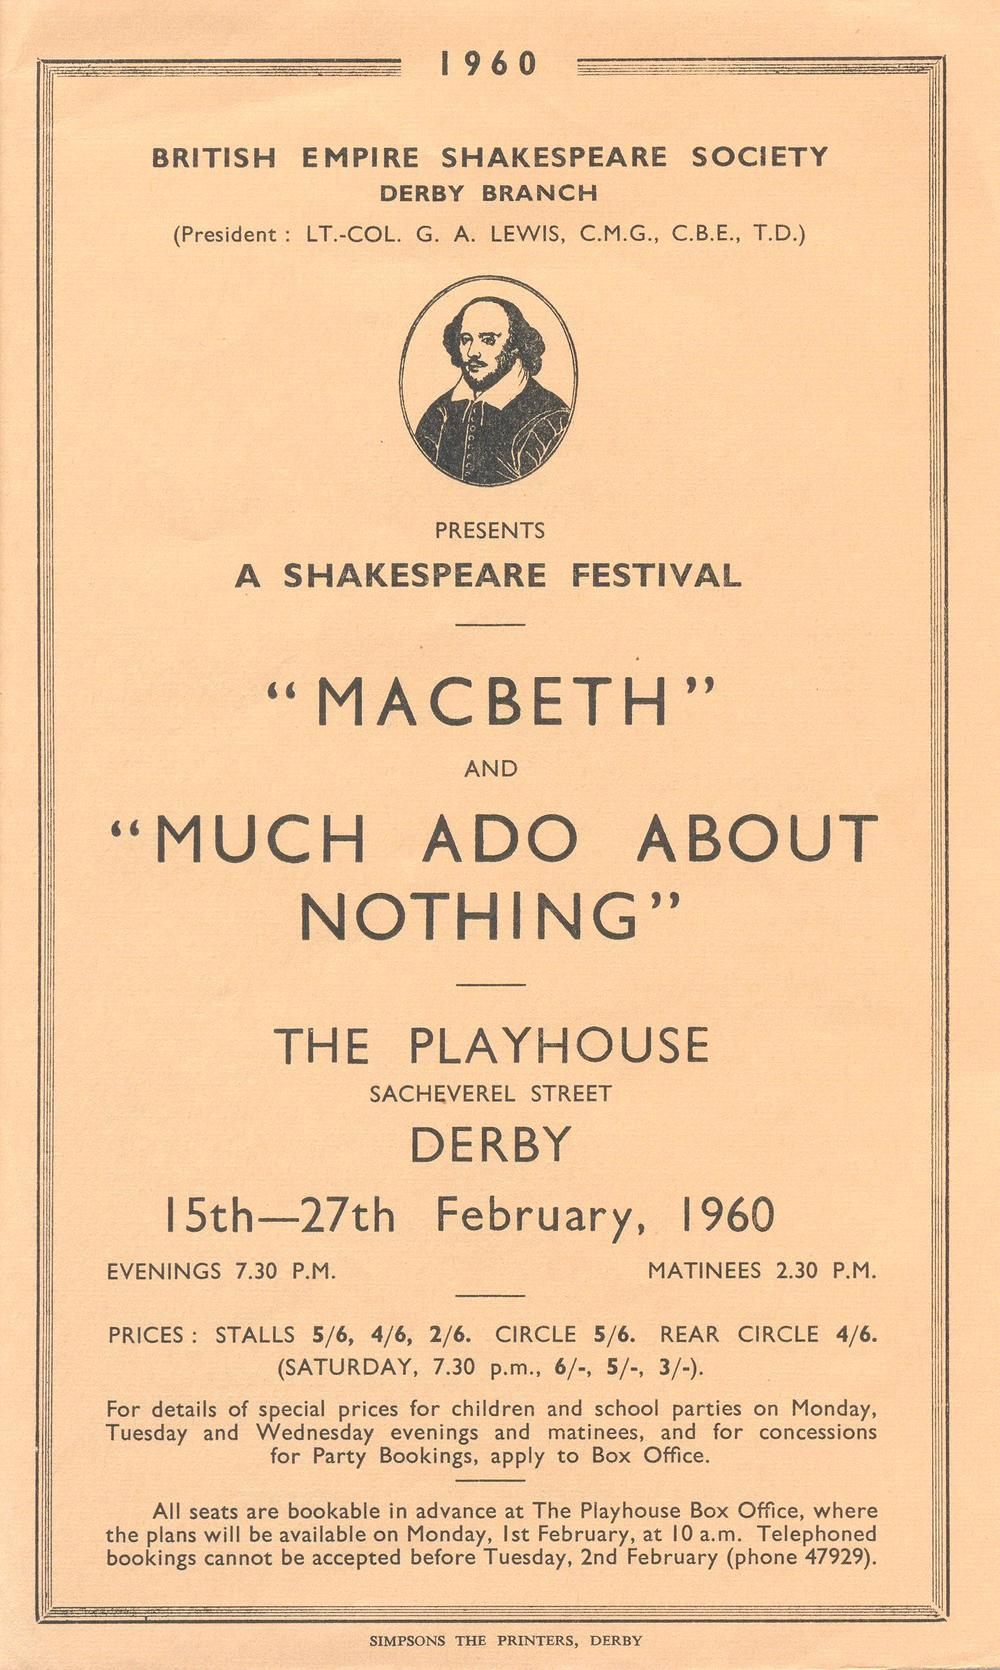 'Macbeth' & ' Much Ado About Nothing' 1960